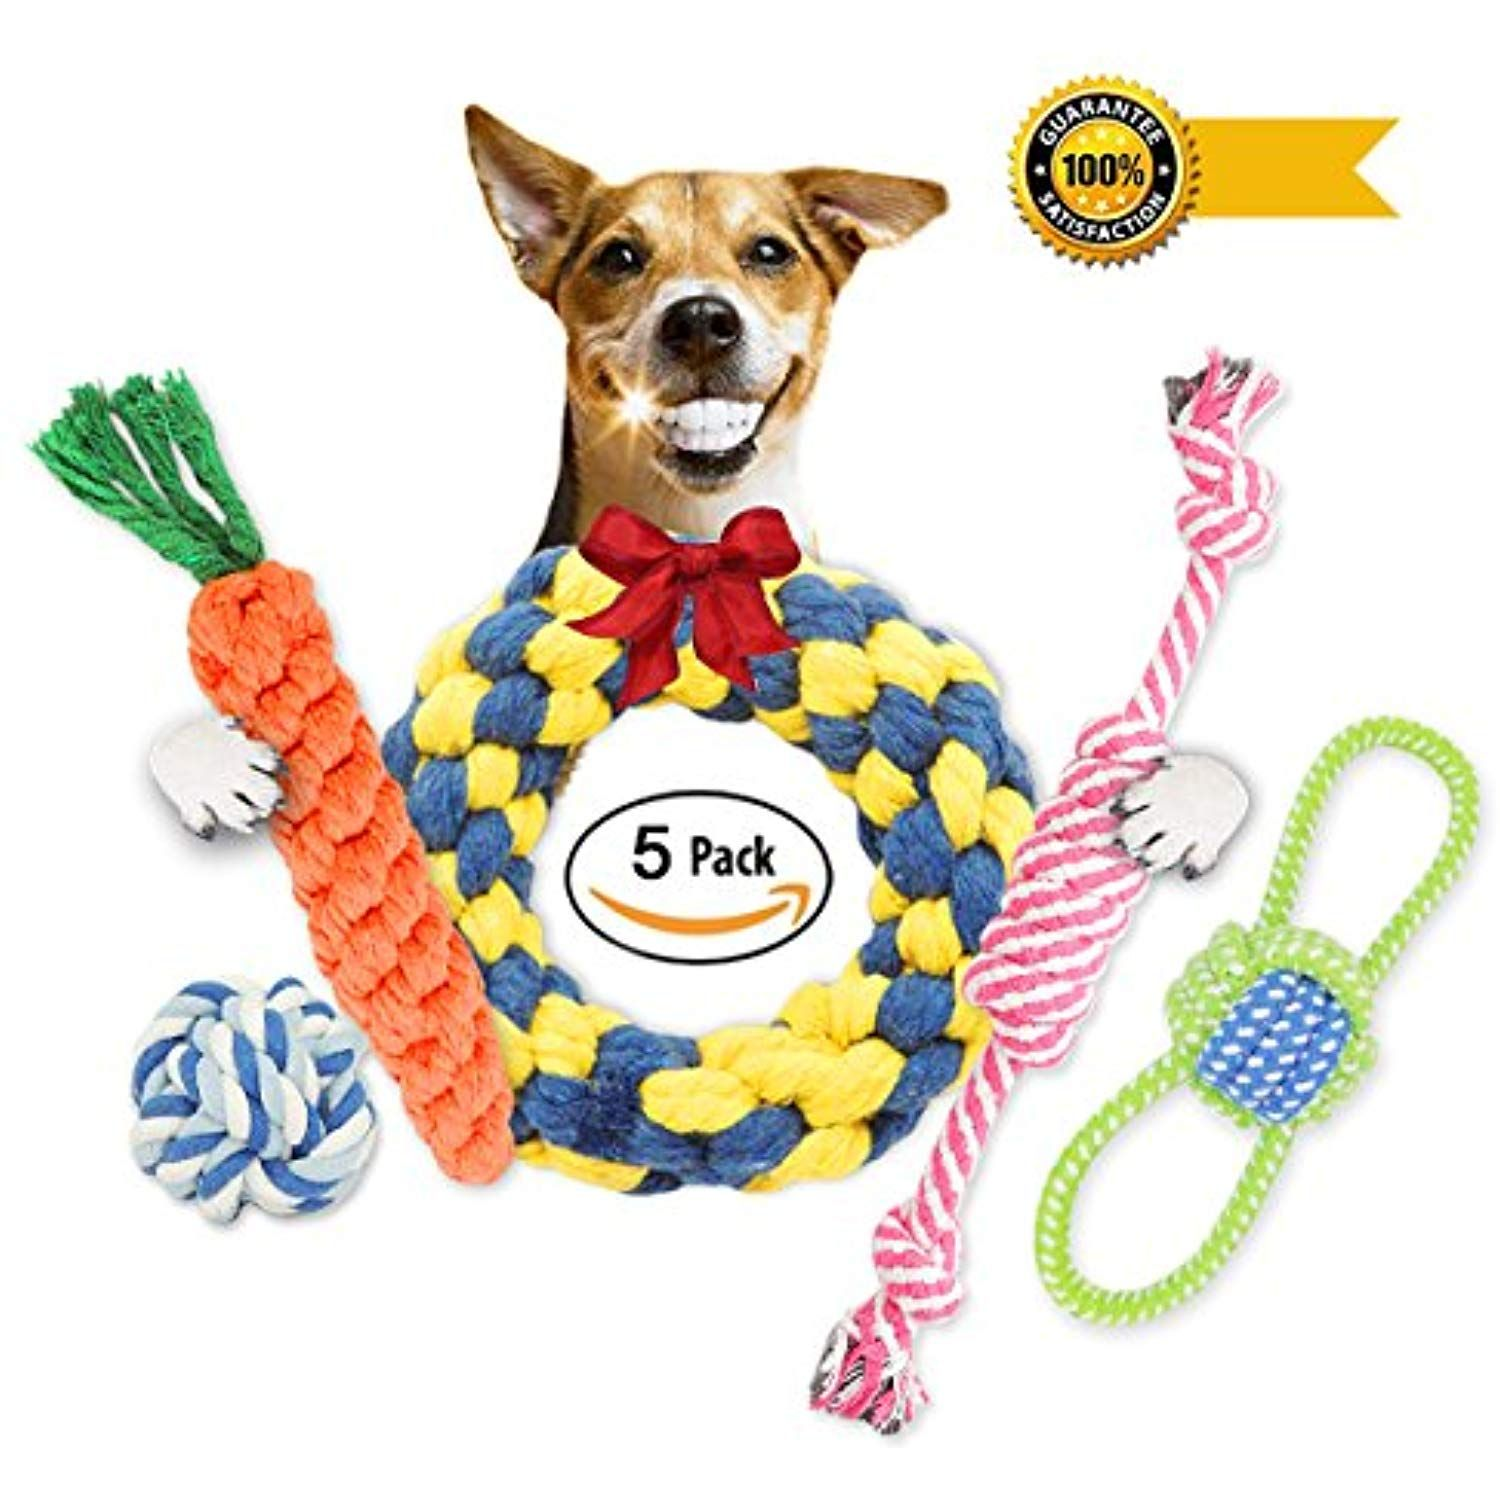 Dechiany Small Dog Puppy Chew Teething Rope Toys Set 5 Pack Gift